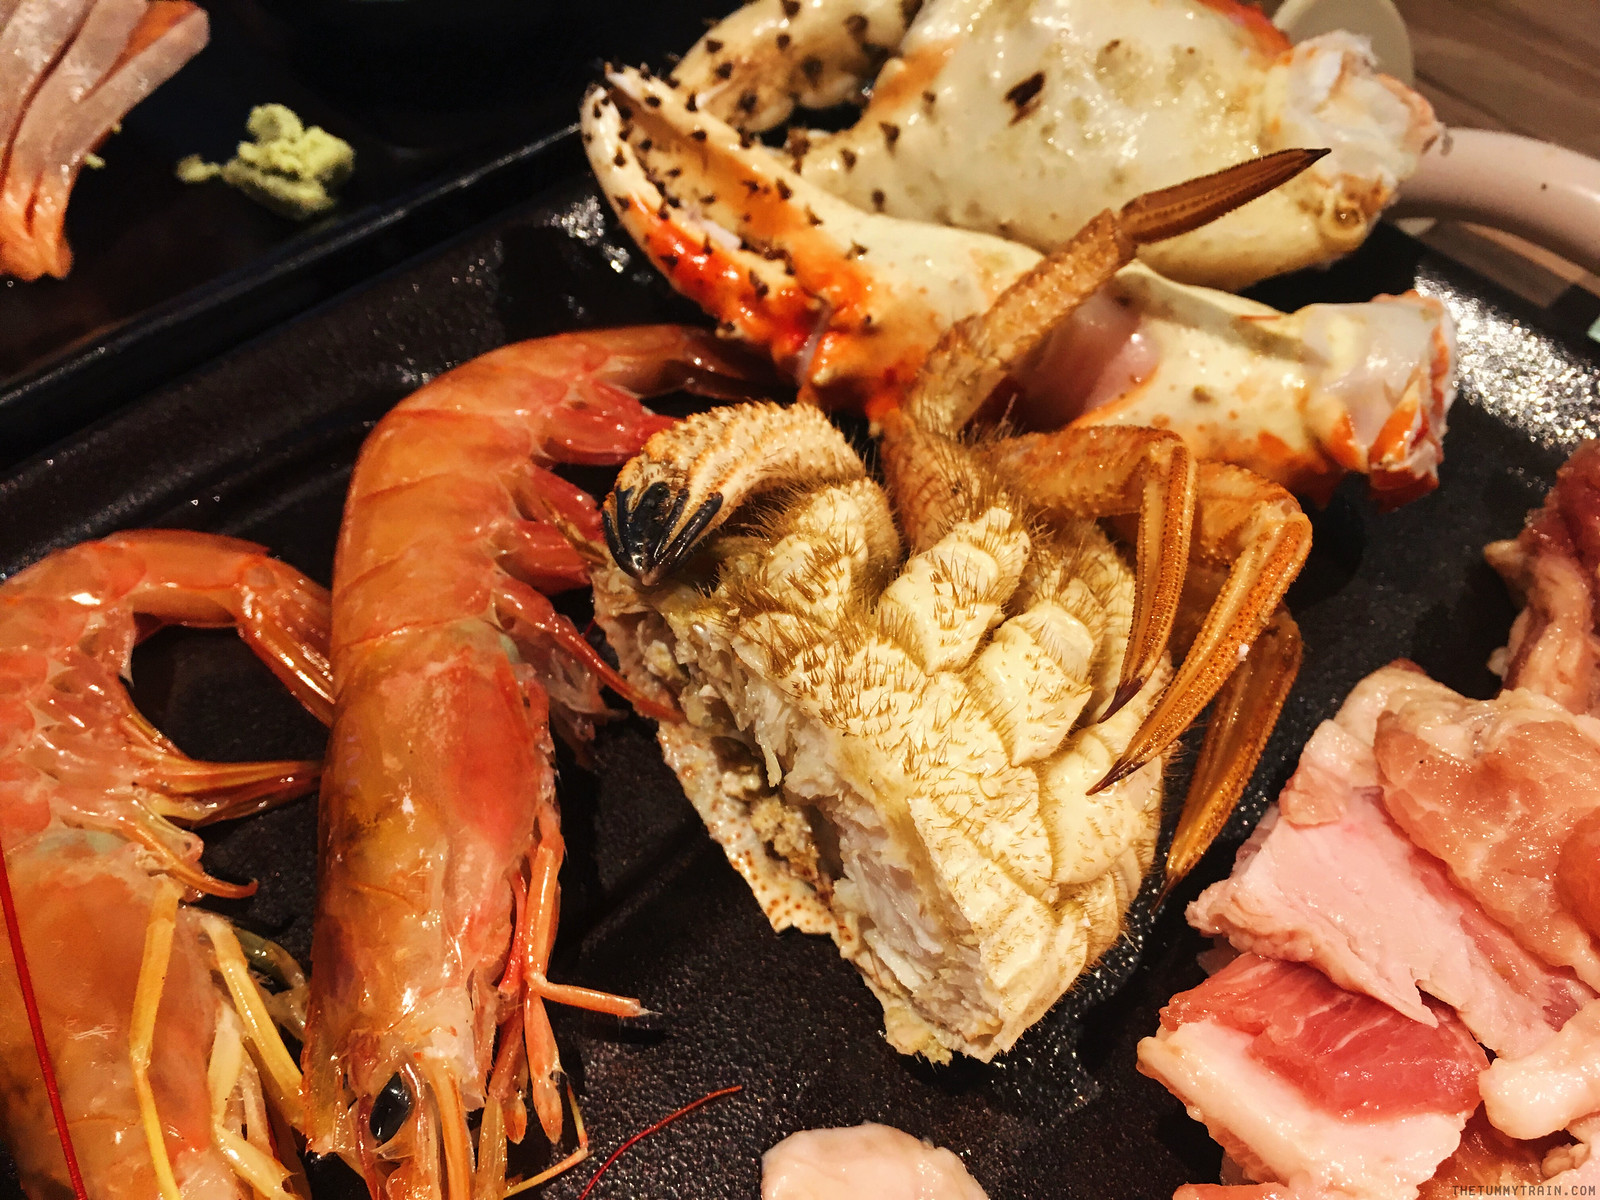 32589524660 4365b8910b h - 7 Foodie Experiences To Try for Your Sapporo Adventure